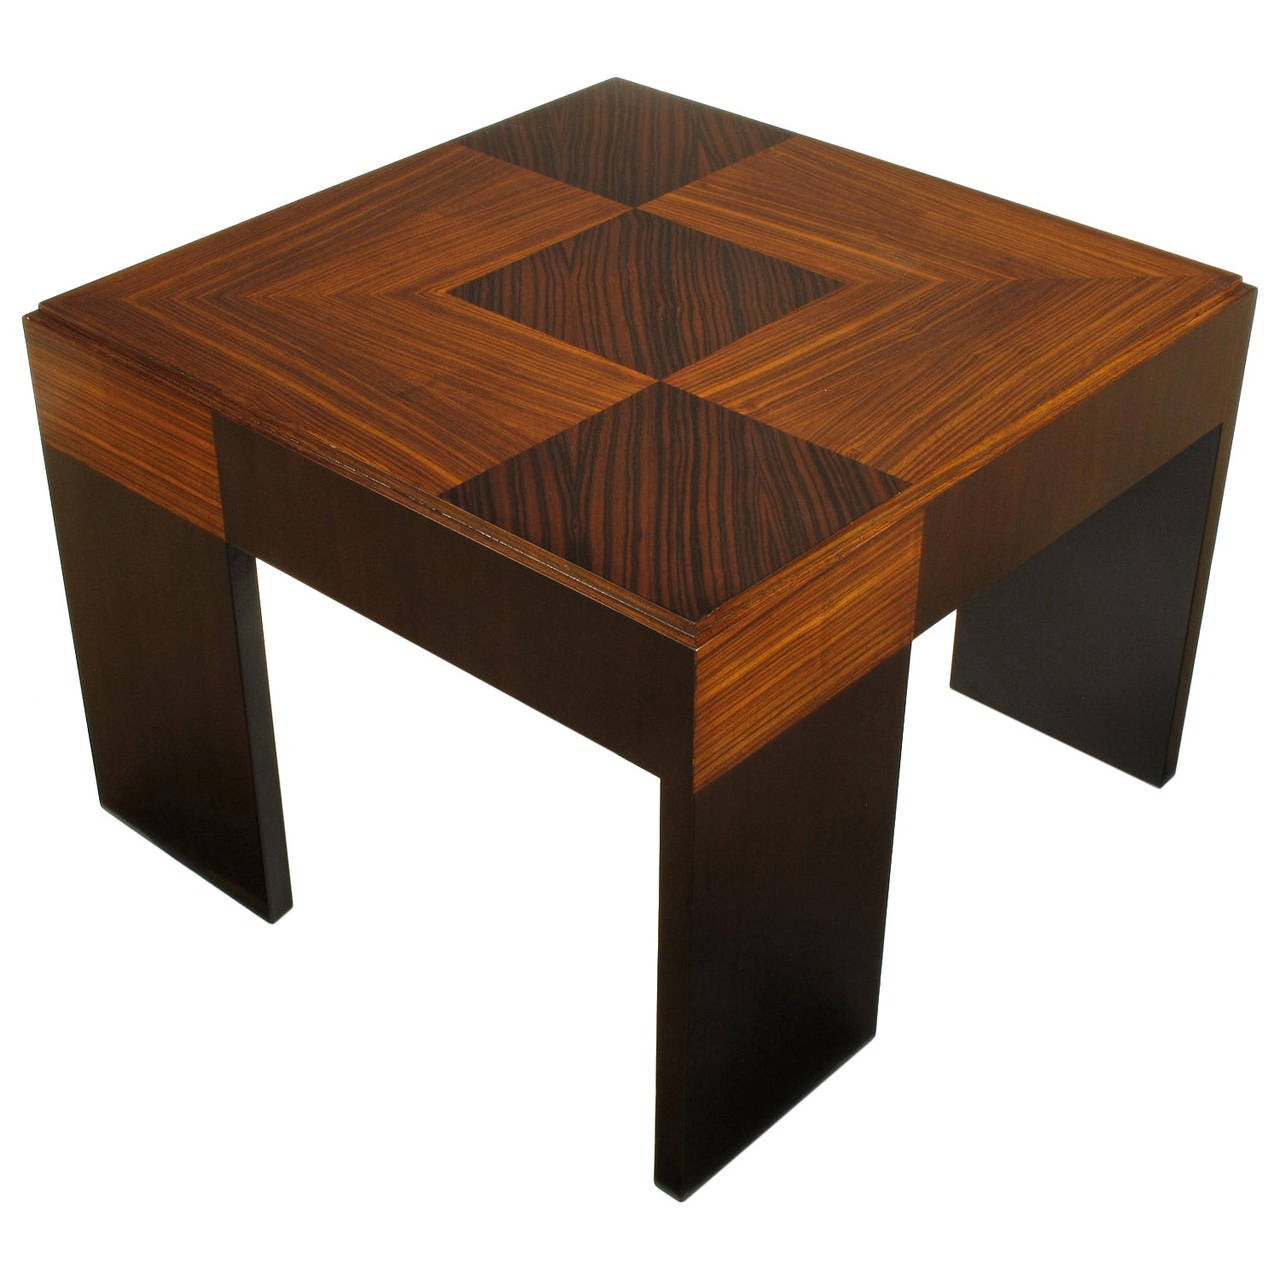 John Widdicomb Natural And Bleached Macassar Ebony And Walnut Coffee Table For Sale At 1stdibs